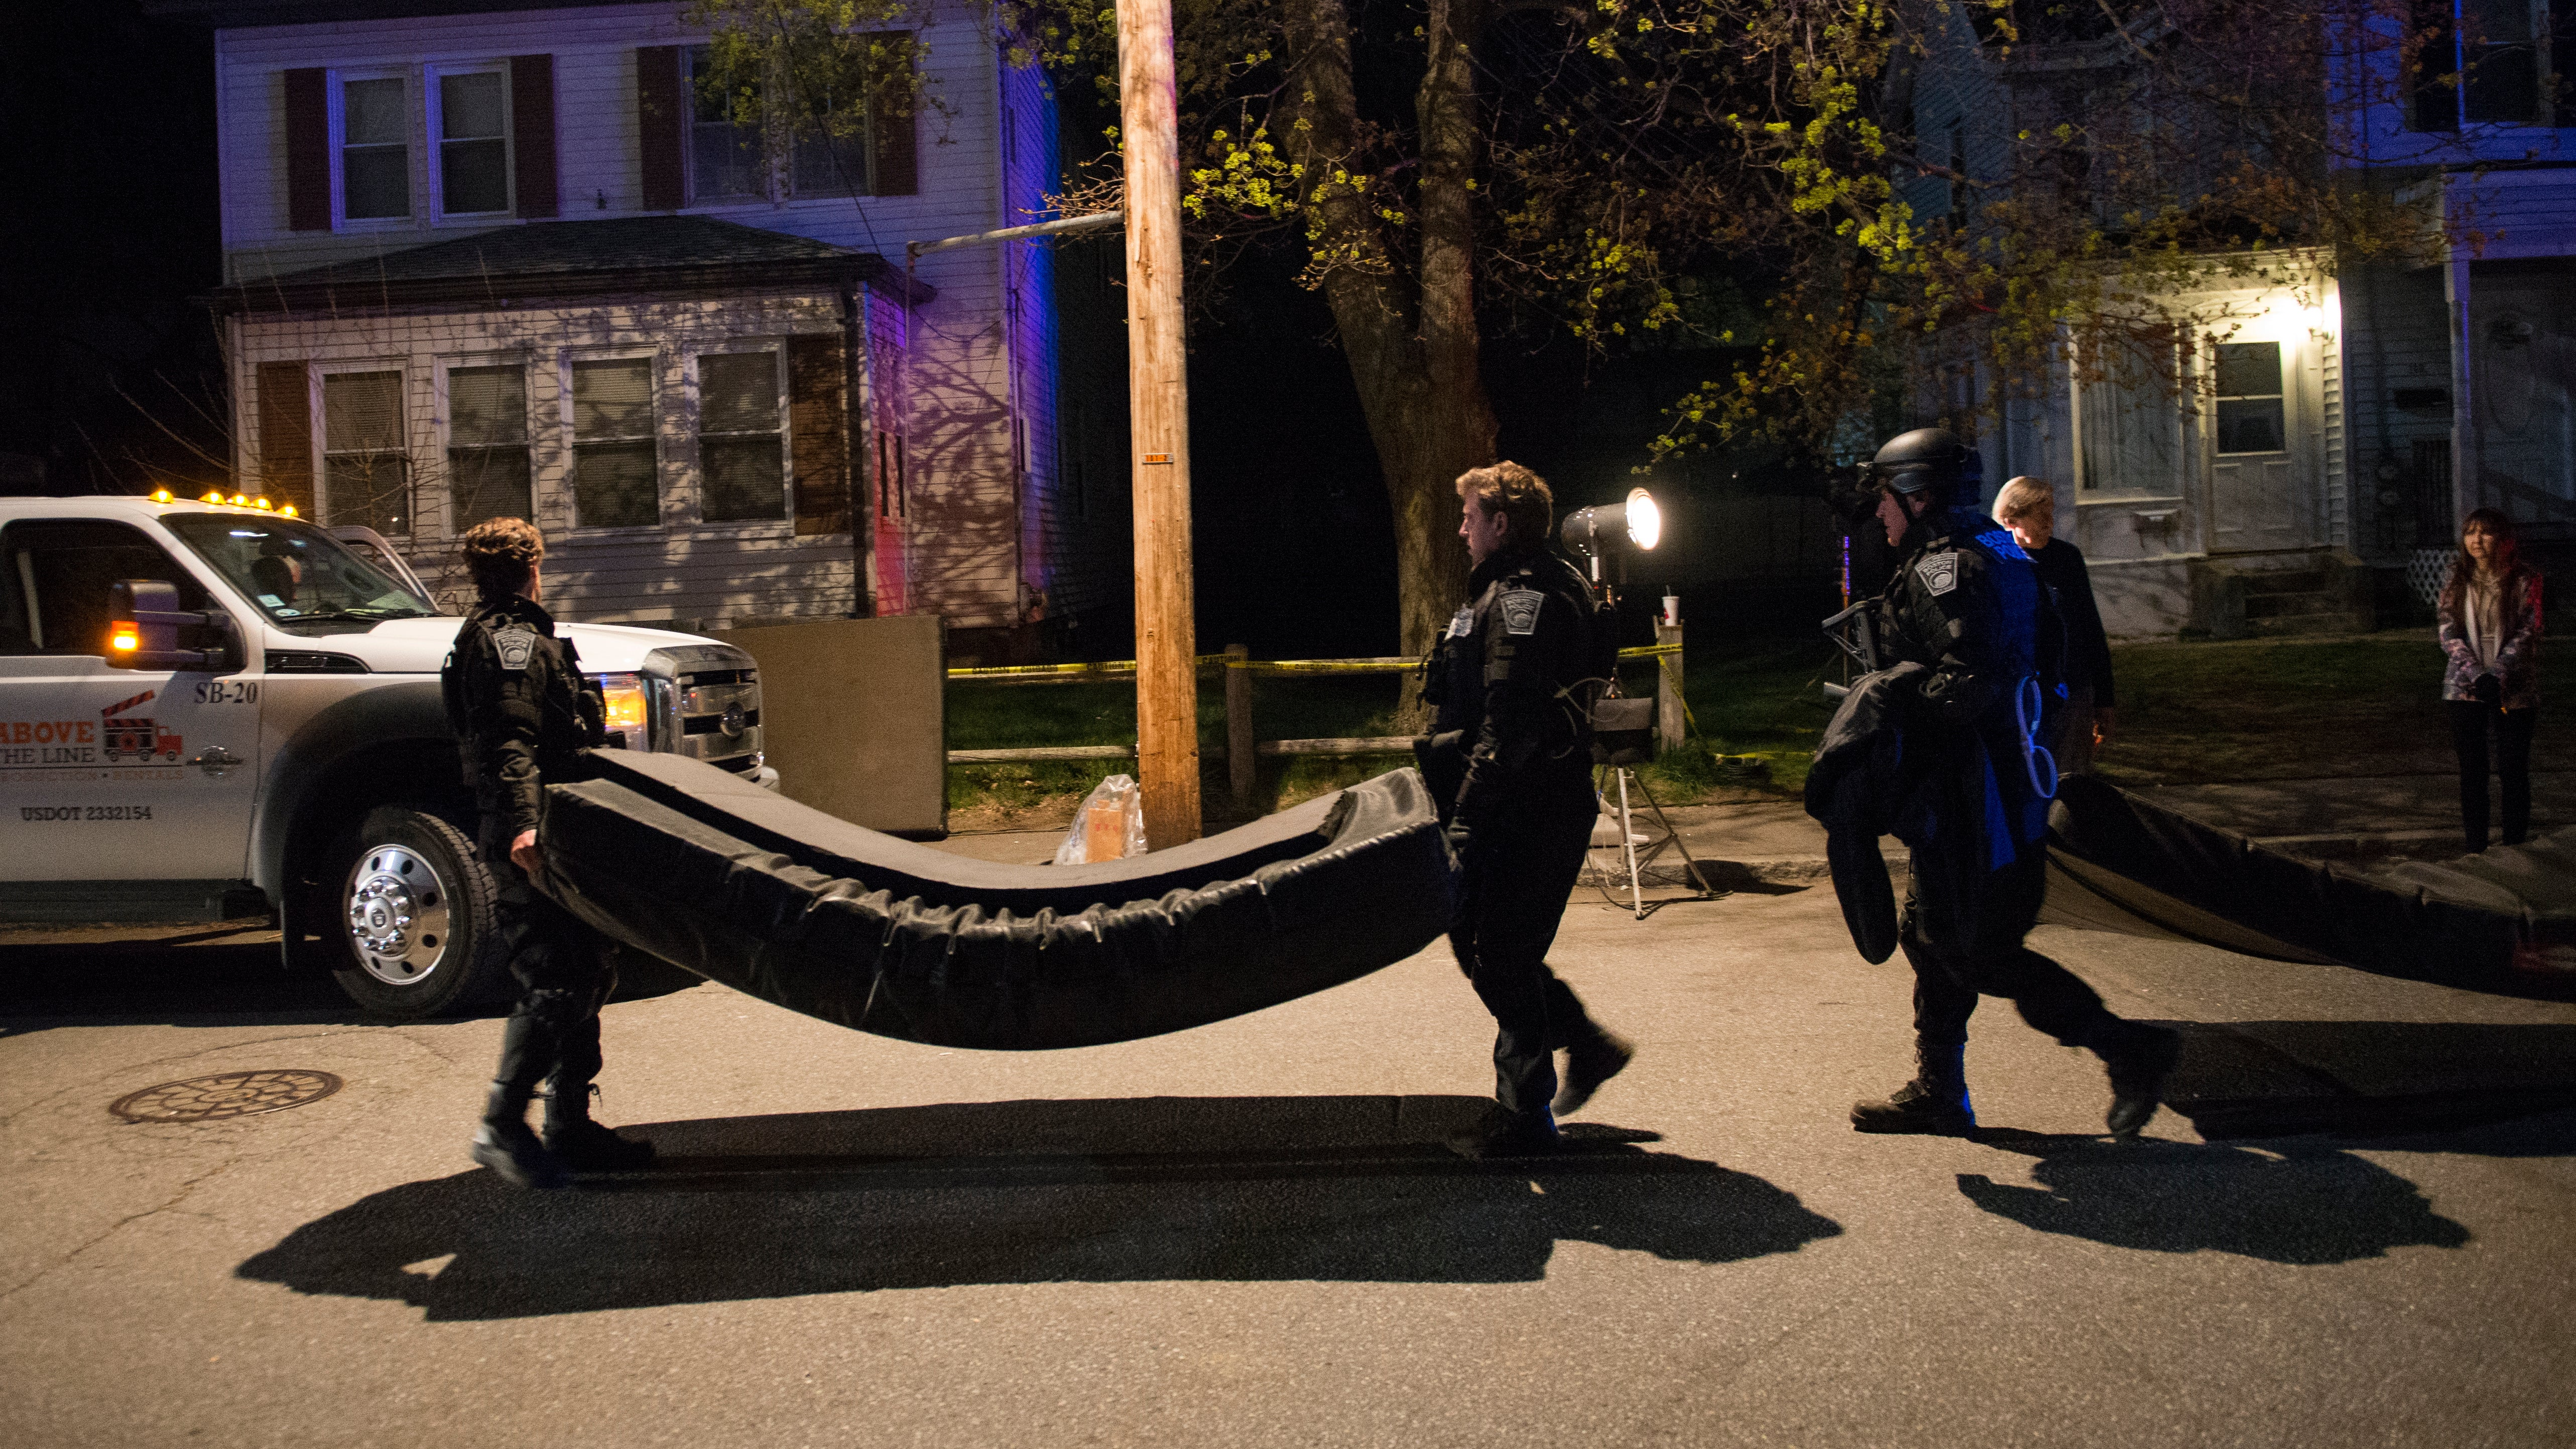 Men in police tactical gear carried what appeared to be a stunt mattress away from the film set of Patriots Day on Harrison Street in Framingham on April 22, 2016. Photo by Jim Tuttle.